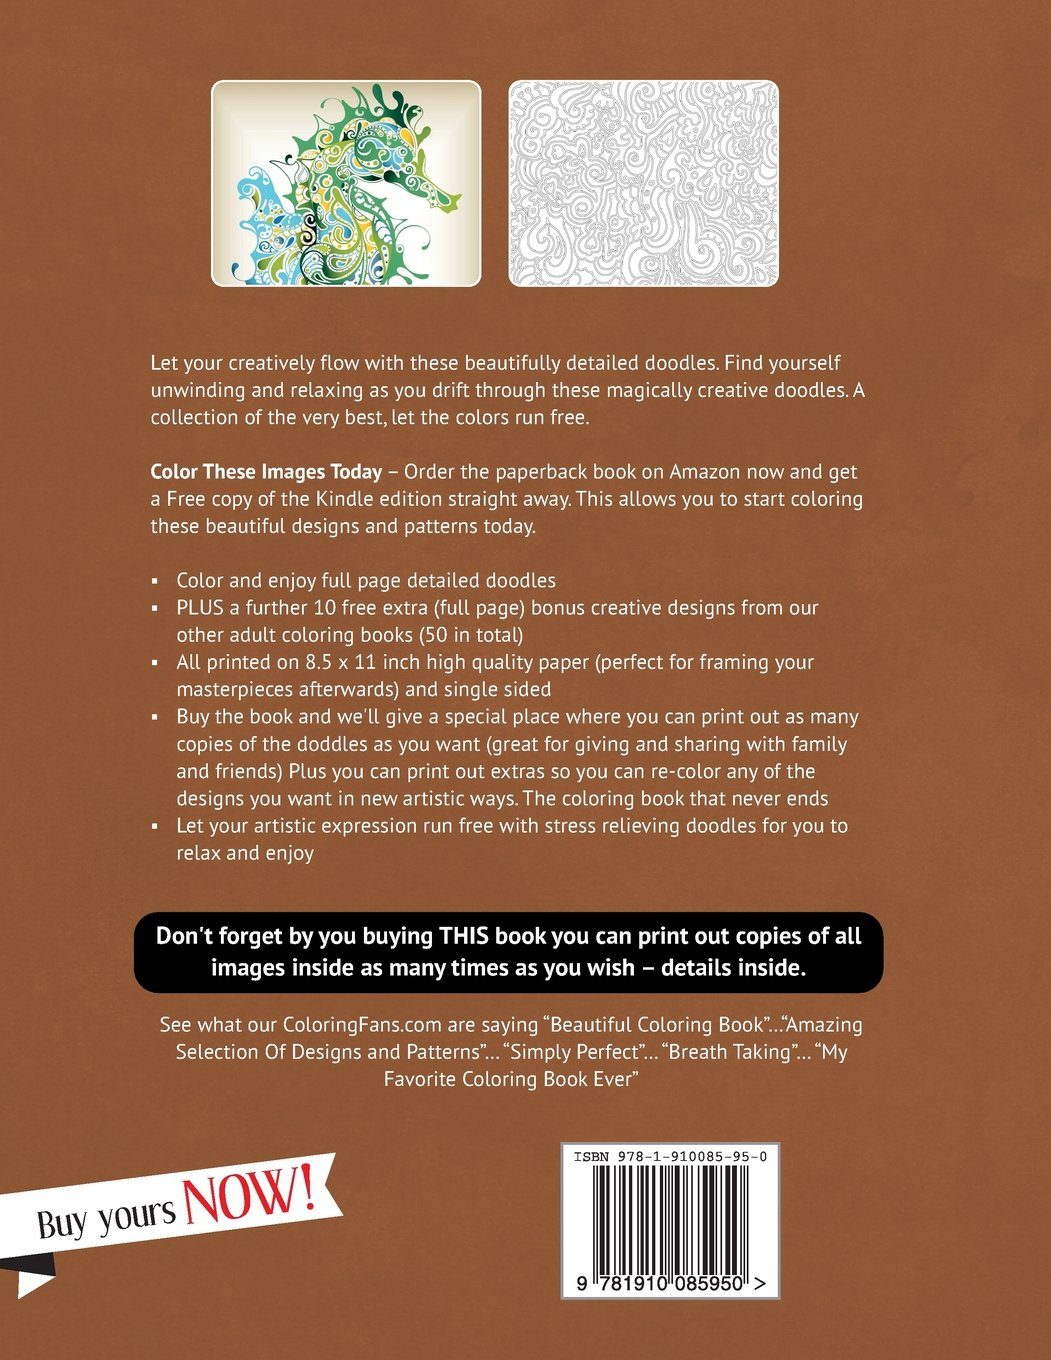 The coolest coloring book ever - Amazon Com Doodle Coloring Book To Color My Stress Away Adult Art Doodle Coloring Book Enjoy The Creative Invasion Volume 1 9781910085950 Grace